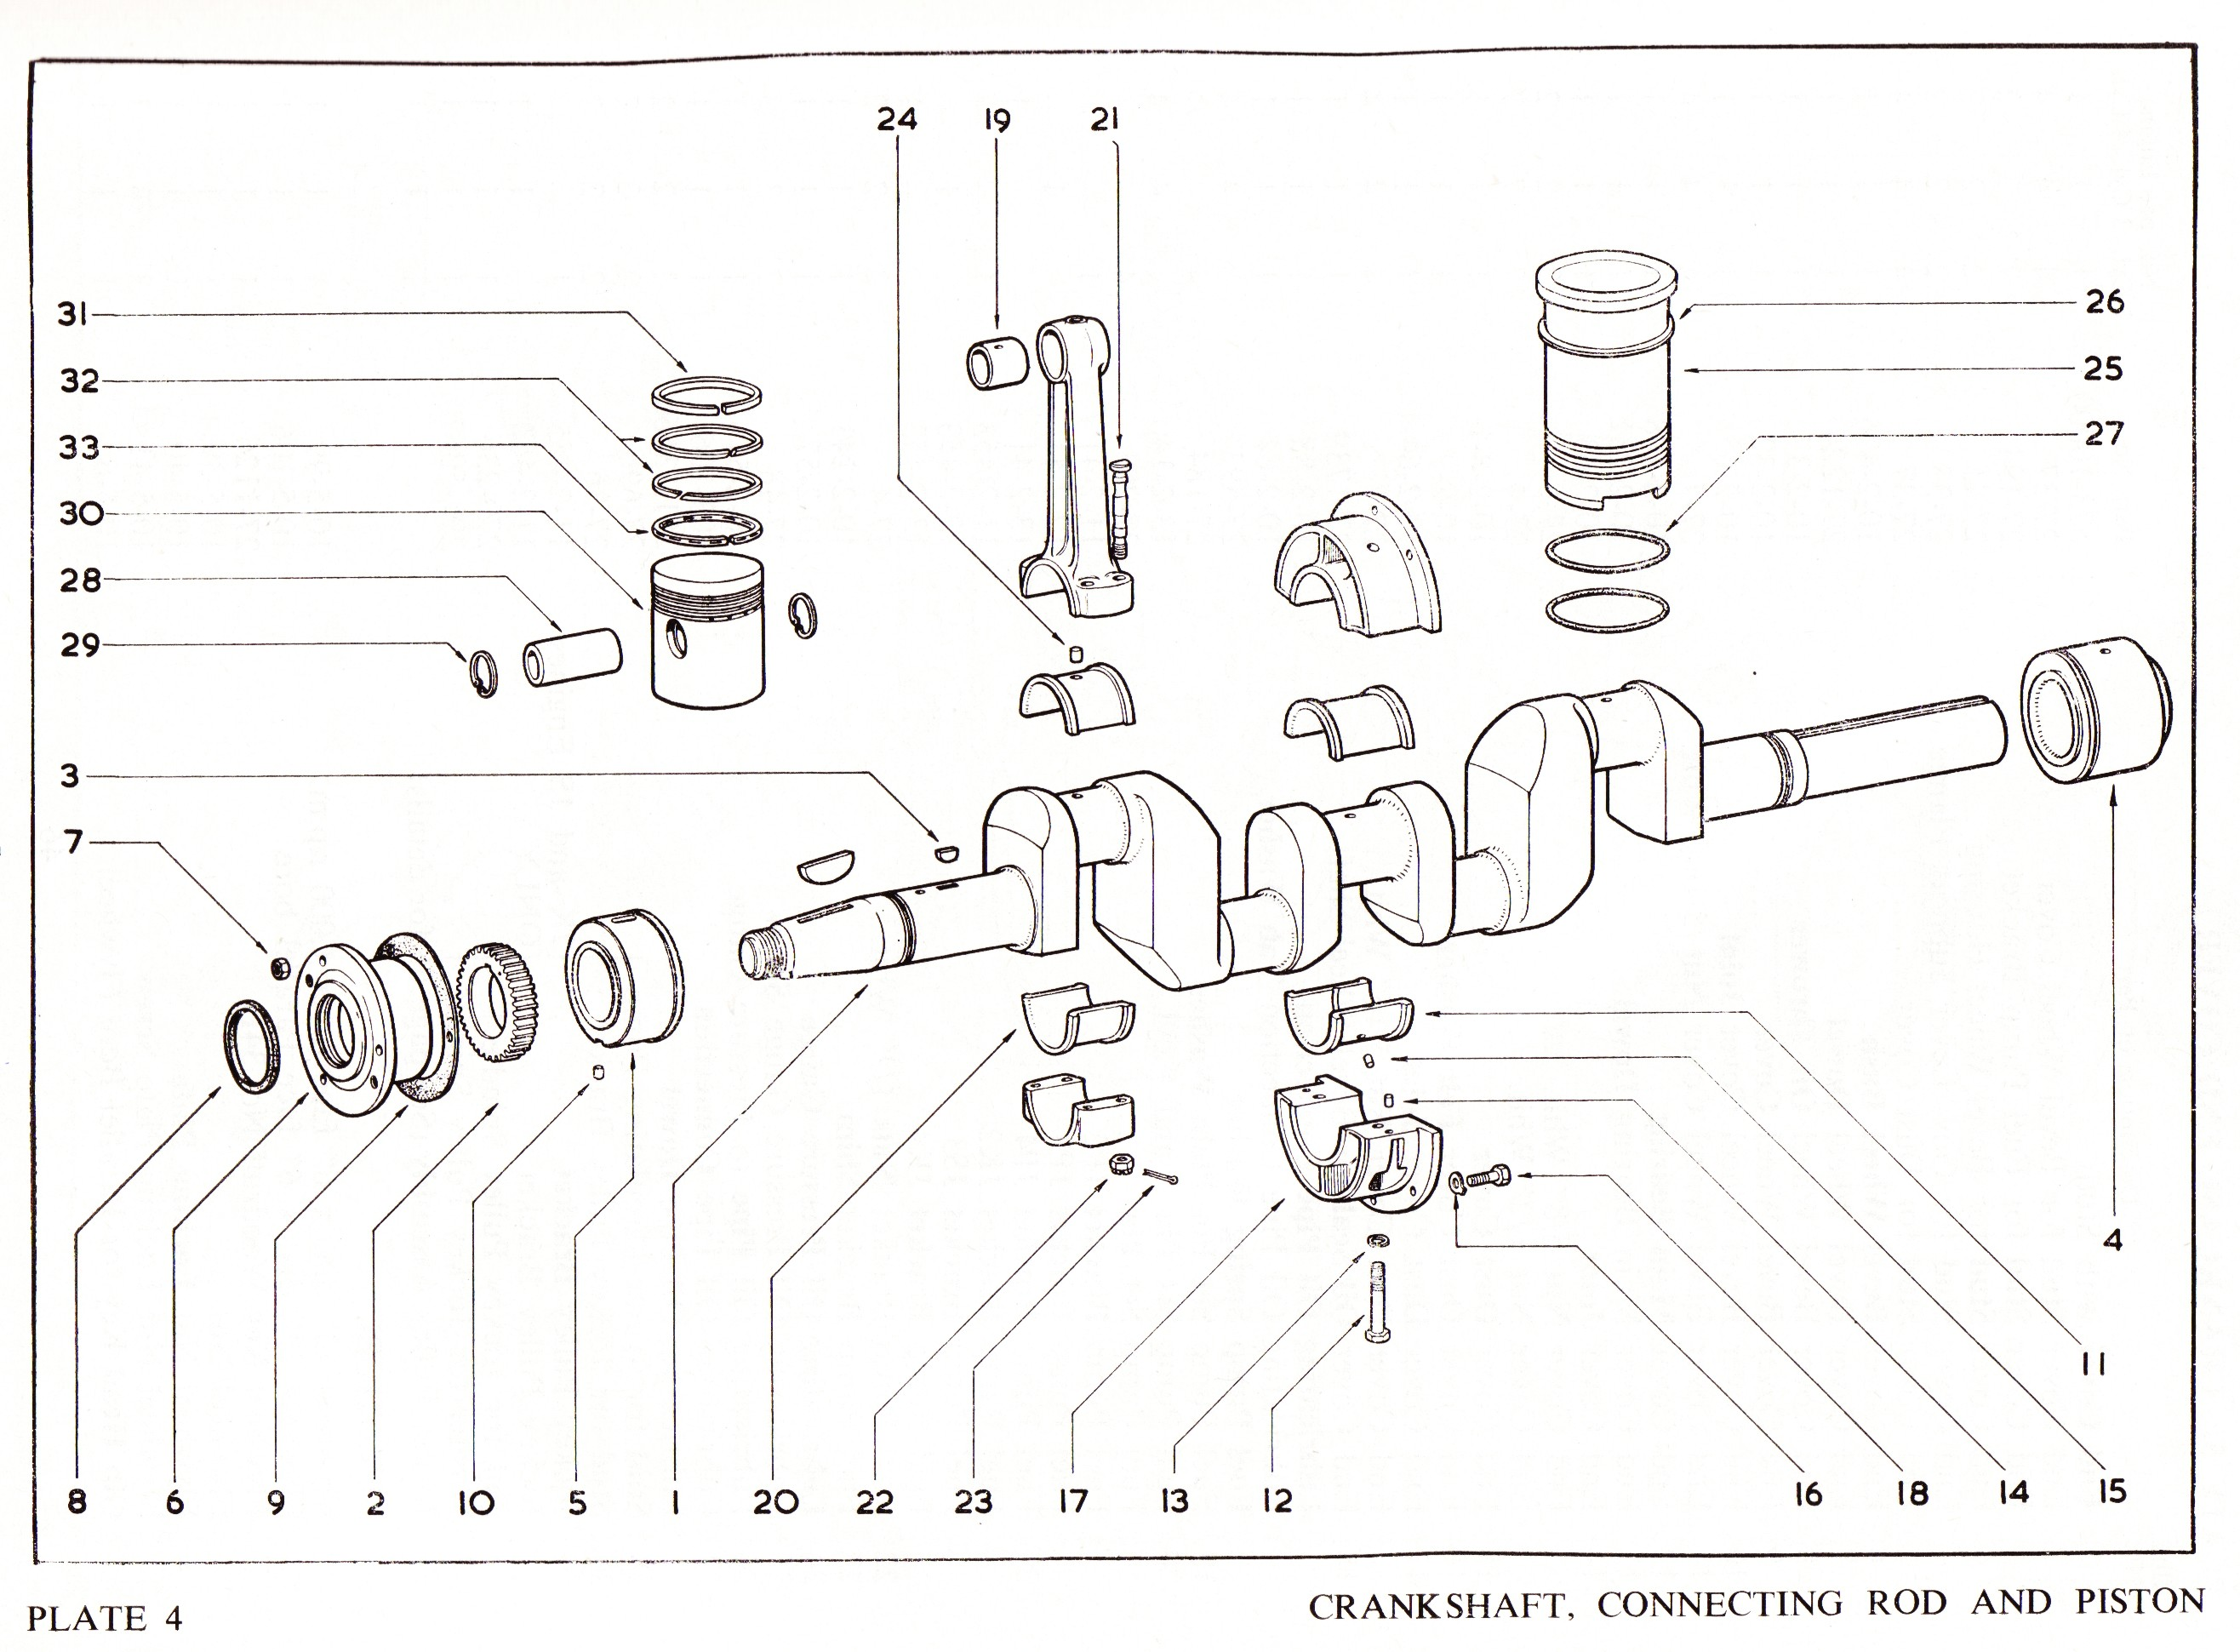 lister petter generator wiring diagram with Lister Petter Engine Parts Diagram on Caterpillar 3208 Injection Pump Wiring Diagram besides Lister Petter Engine Parts Diagram besides 6500 Onan Generator Wiring Diagram likewise Index php further .